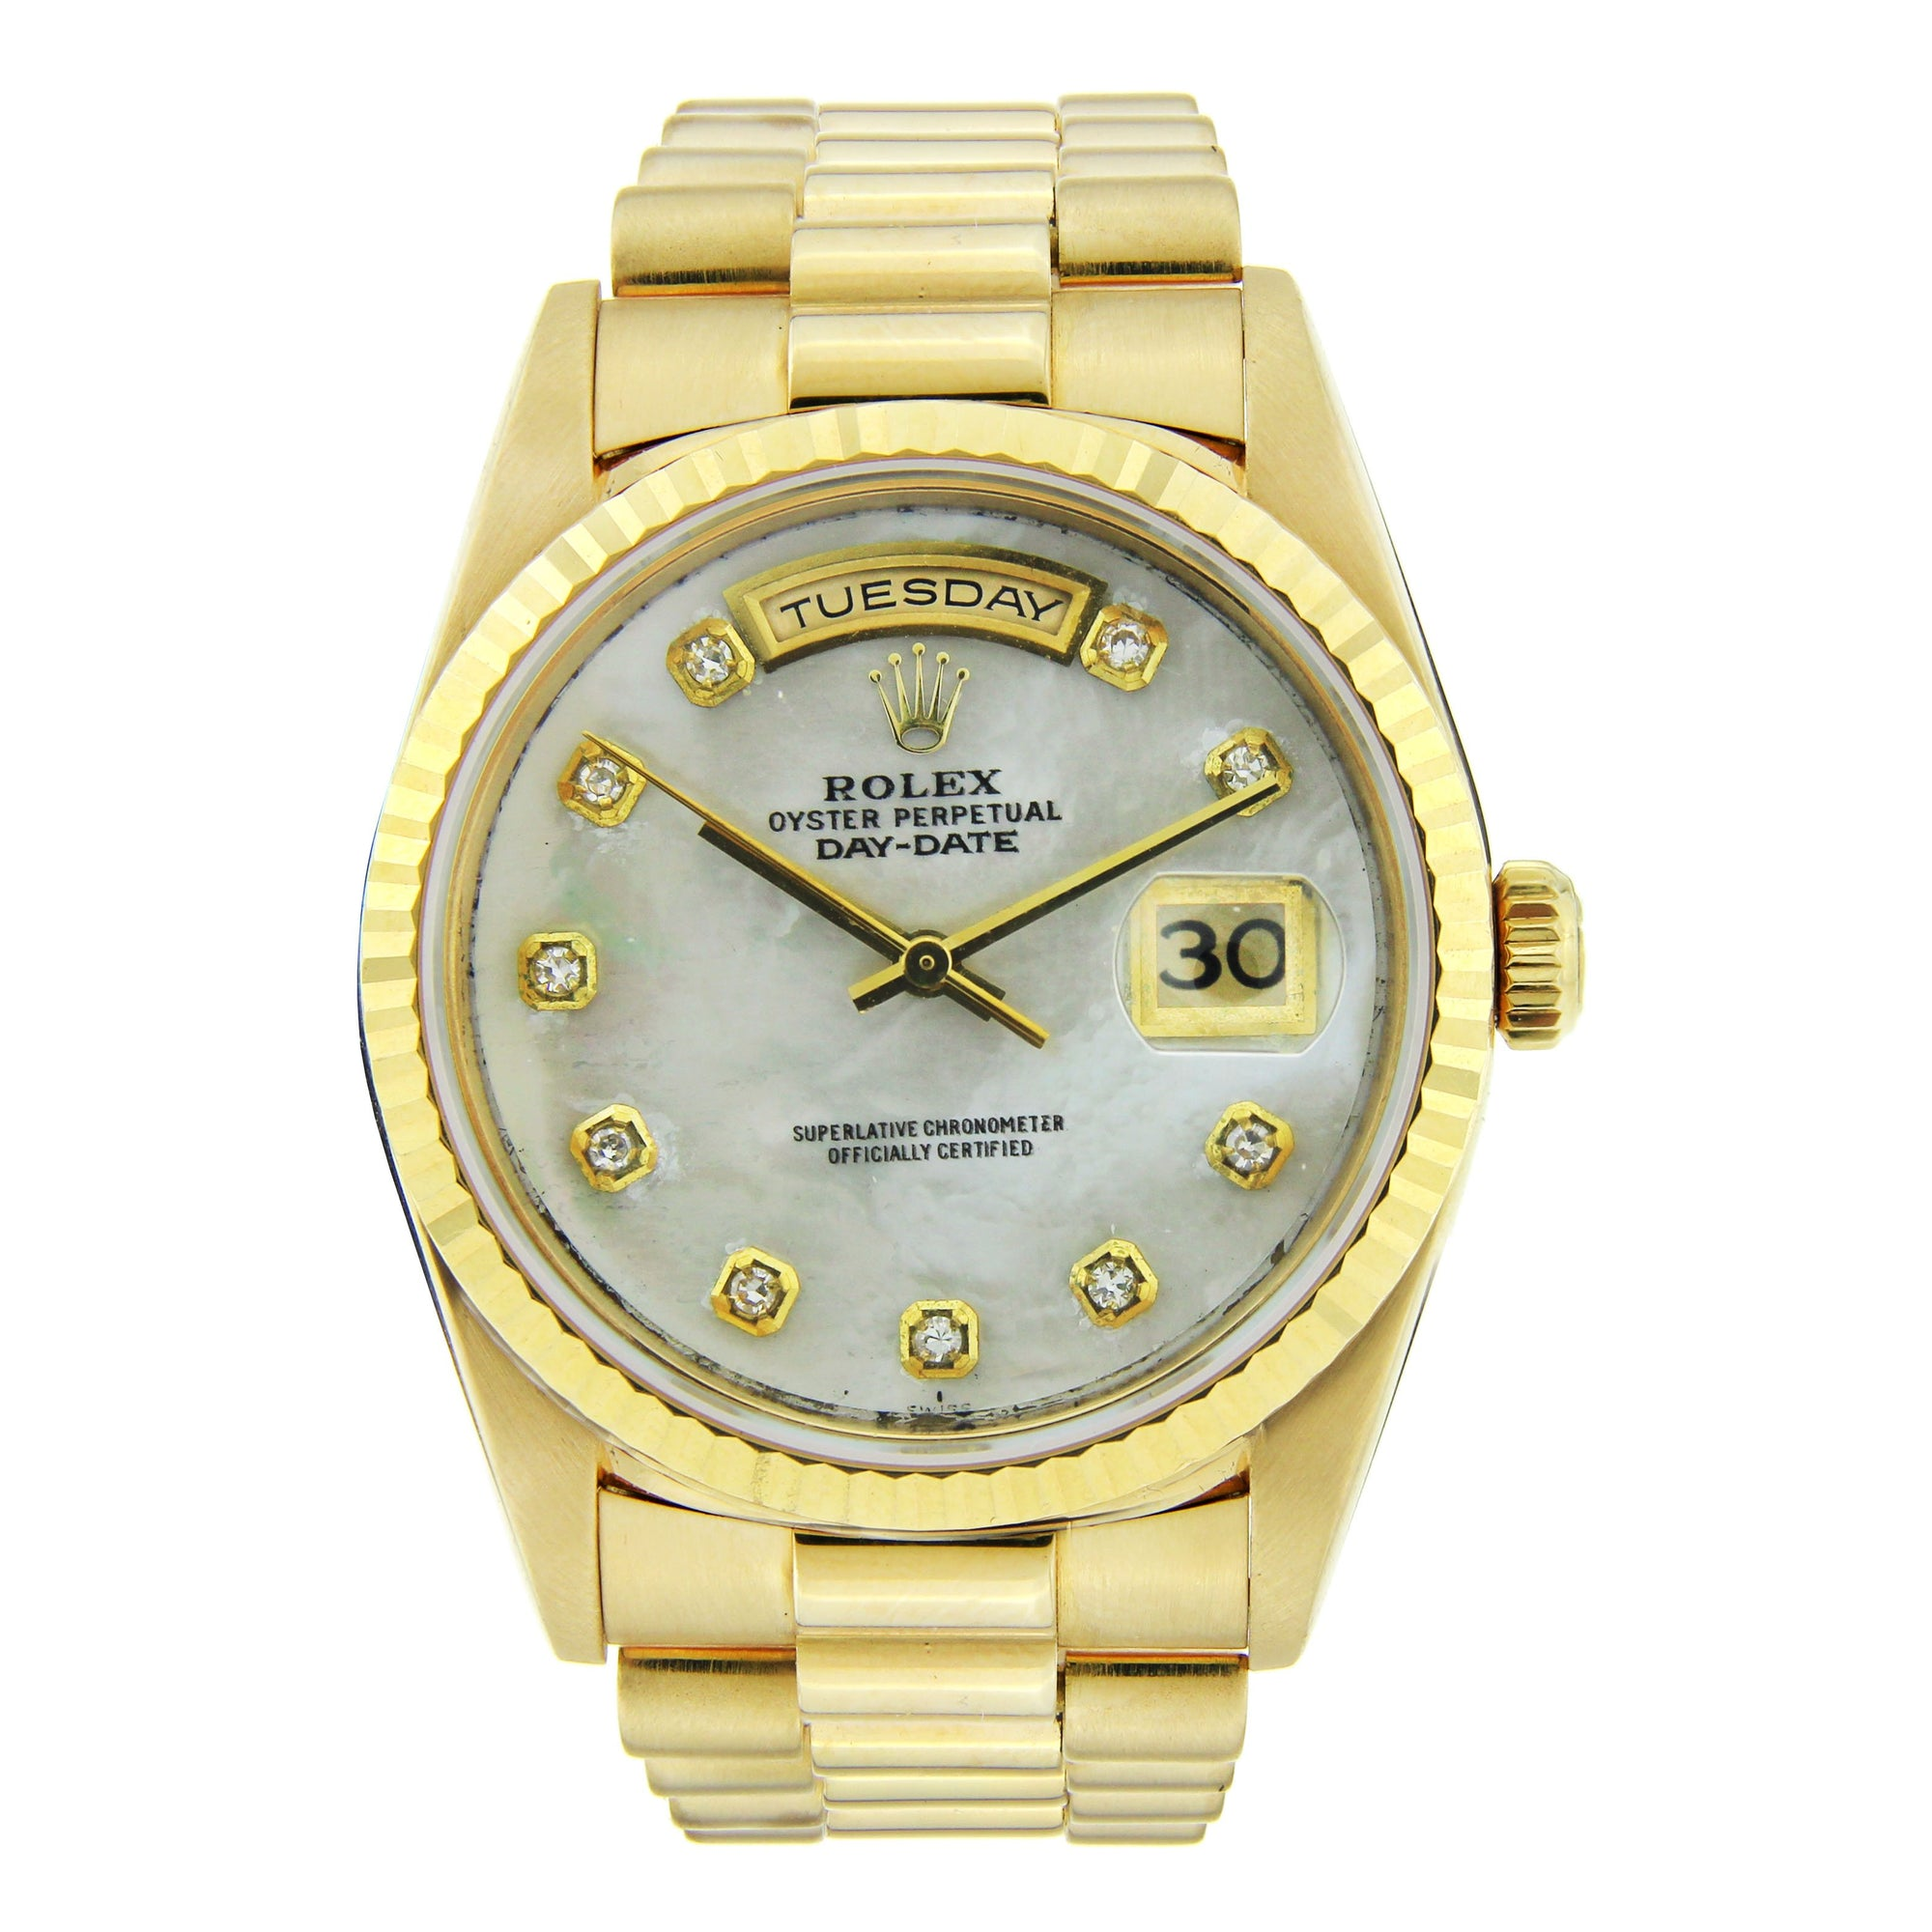 Rolex Day Date Diamond Watch, 36mm, 18K Yellow GoldMother of Pearl Diamond Dial